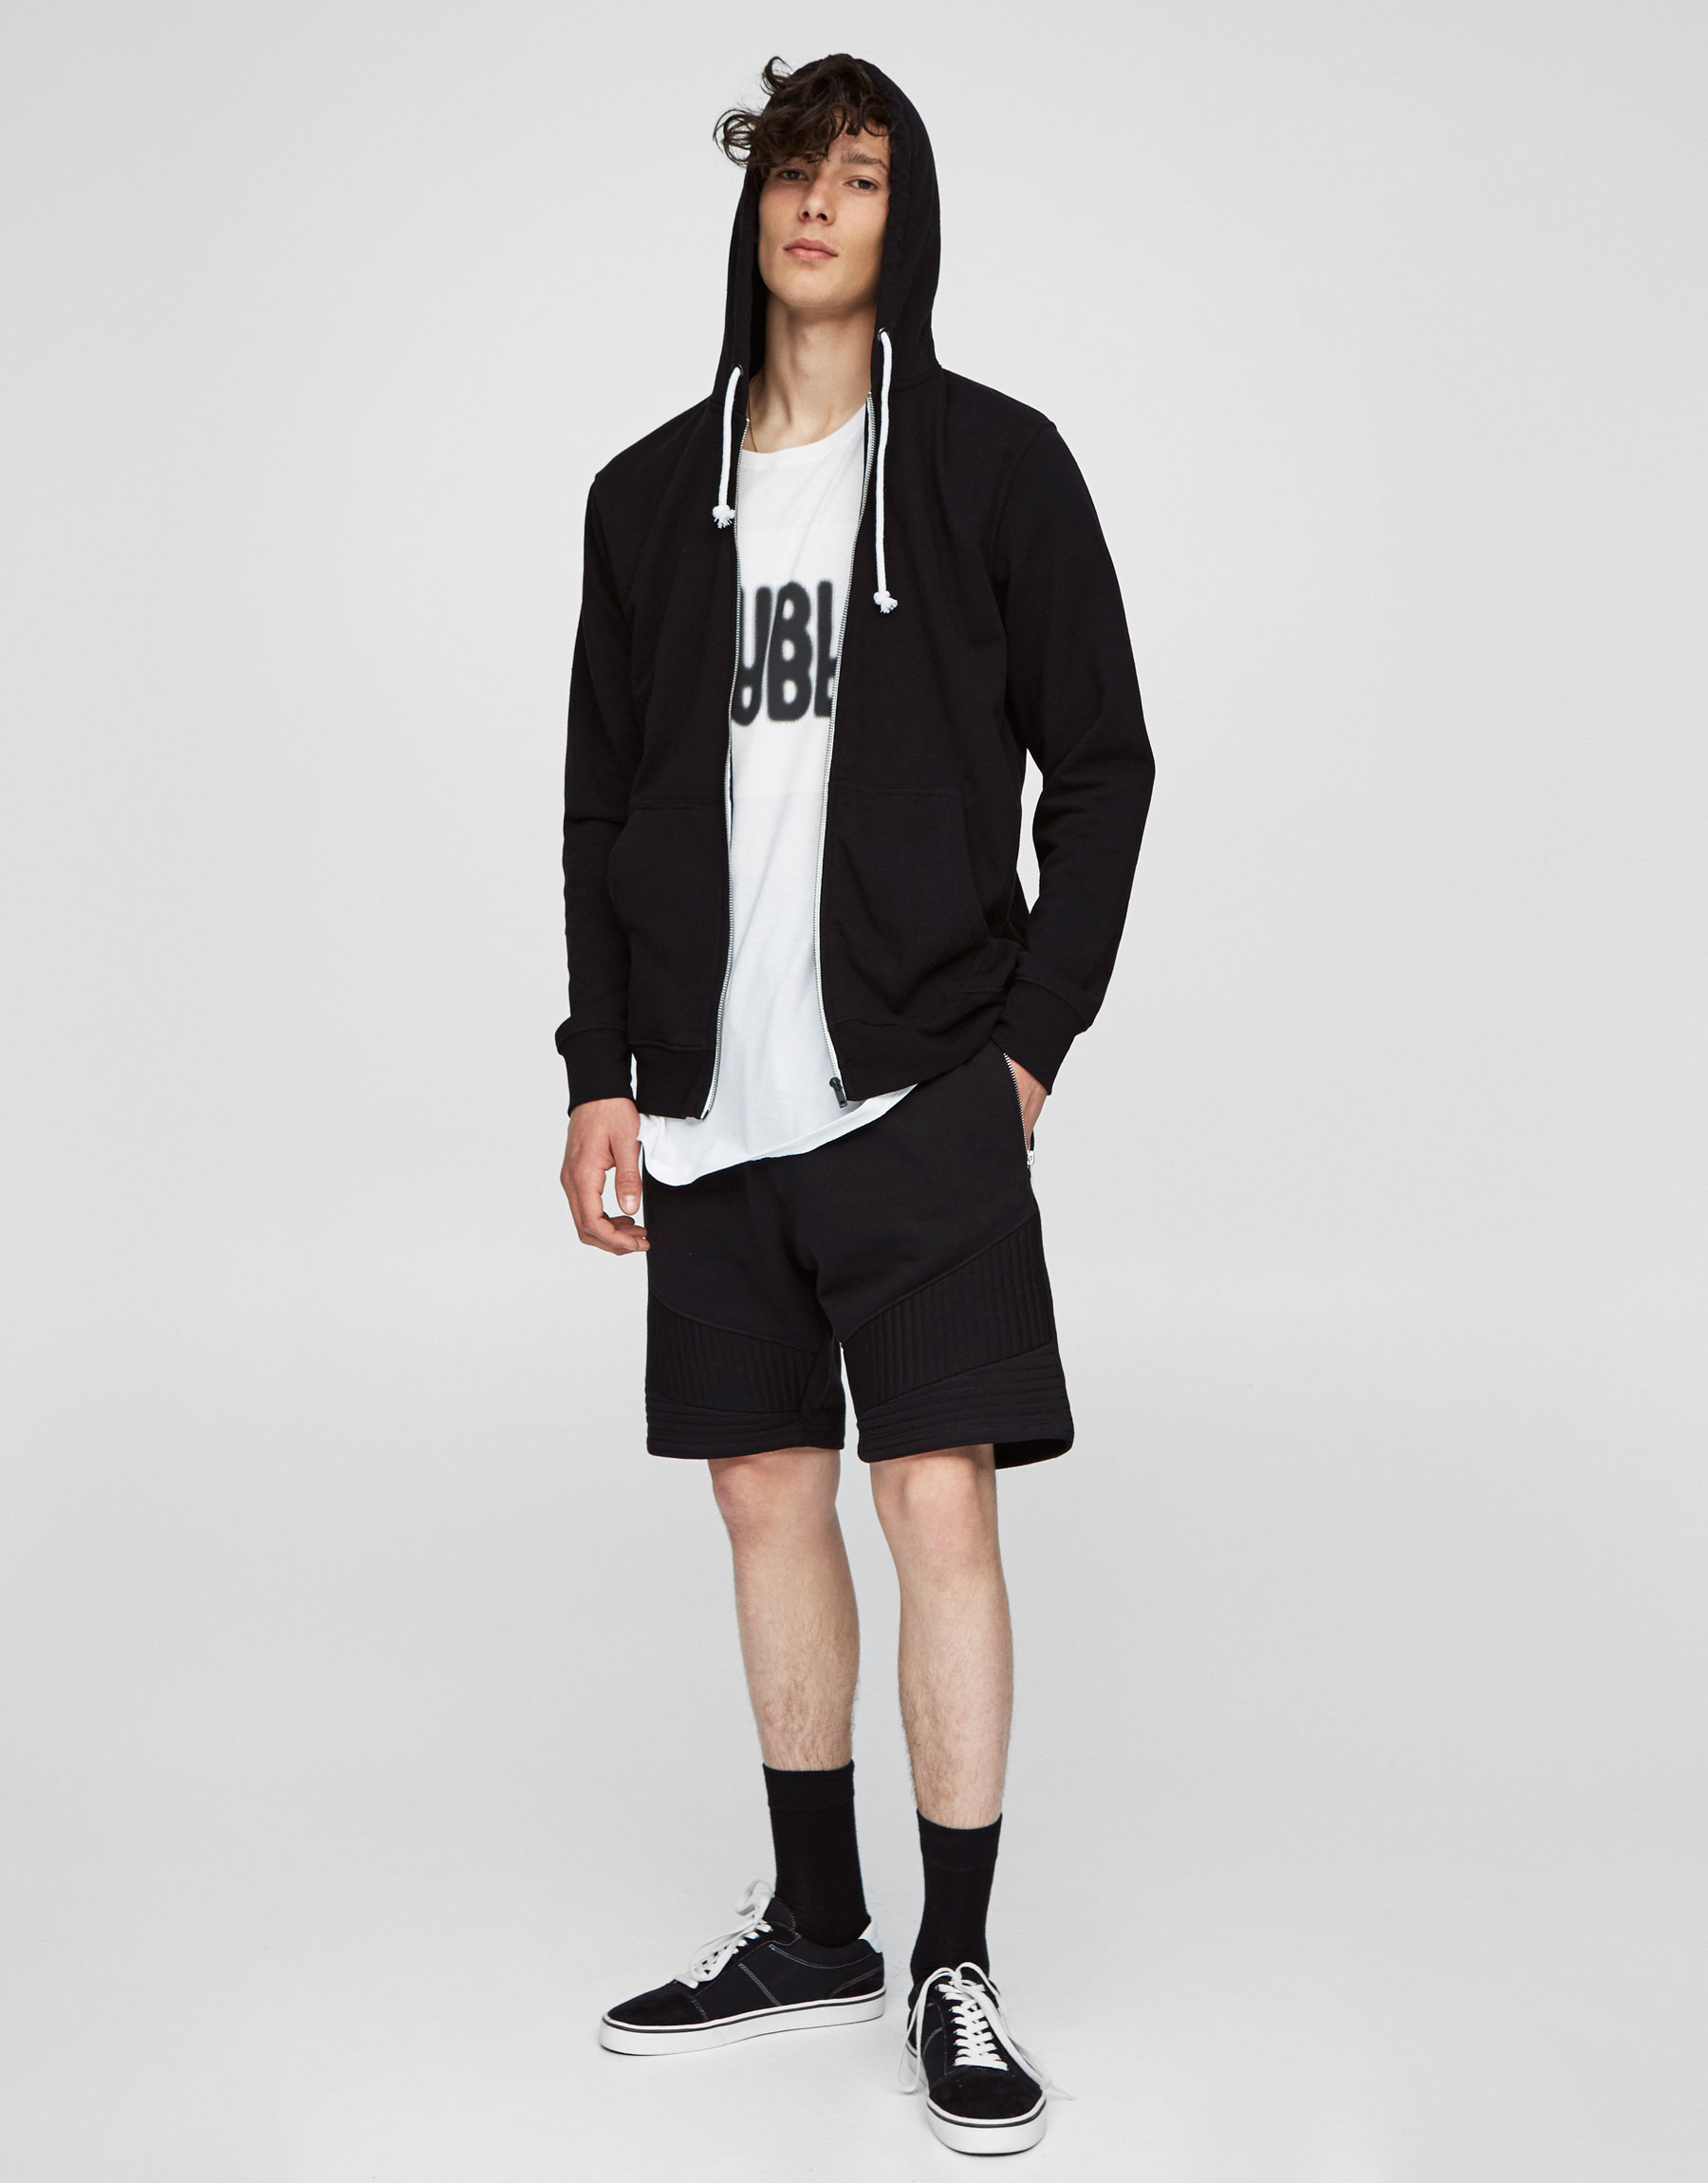 Jogging cut biker bermuda shorts